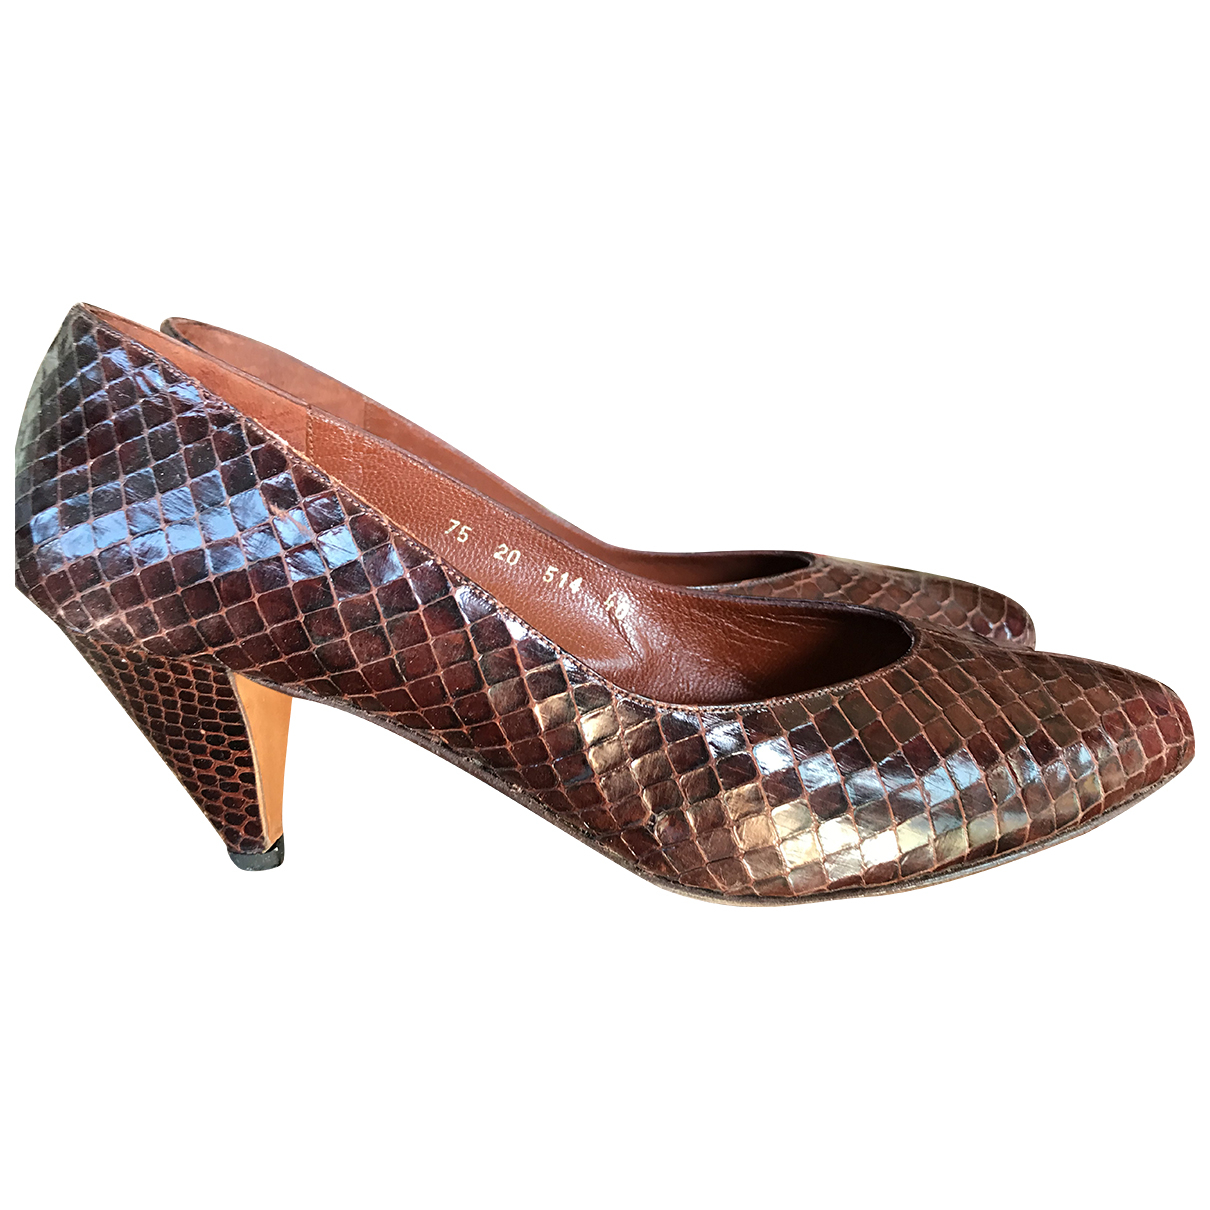 Autre Marque N Brown Python Heels for Women 40 EU